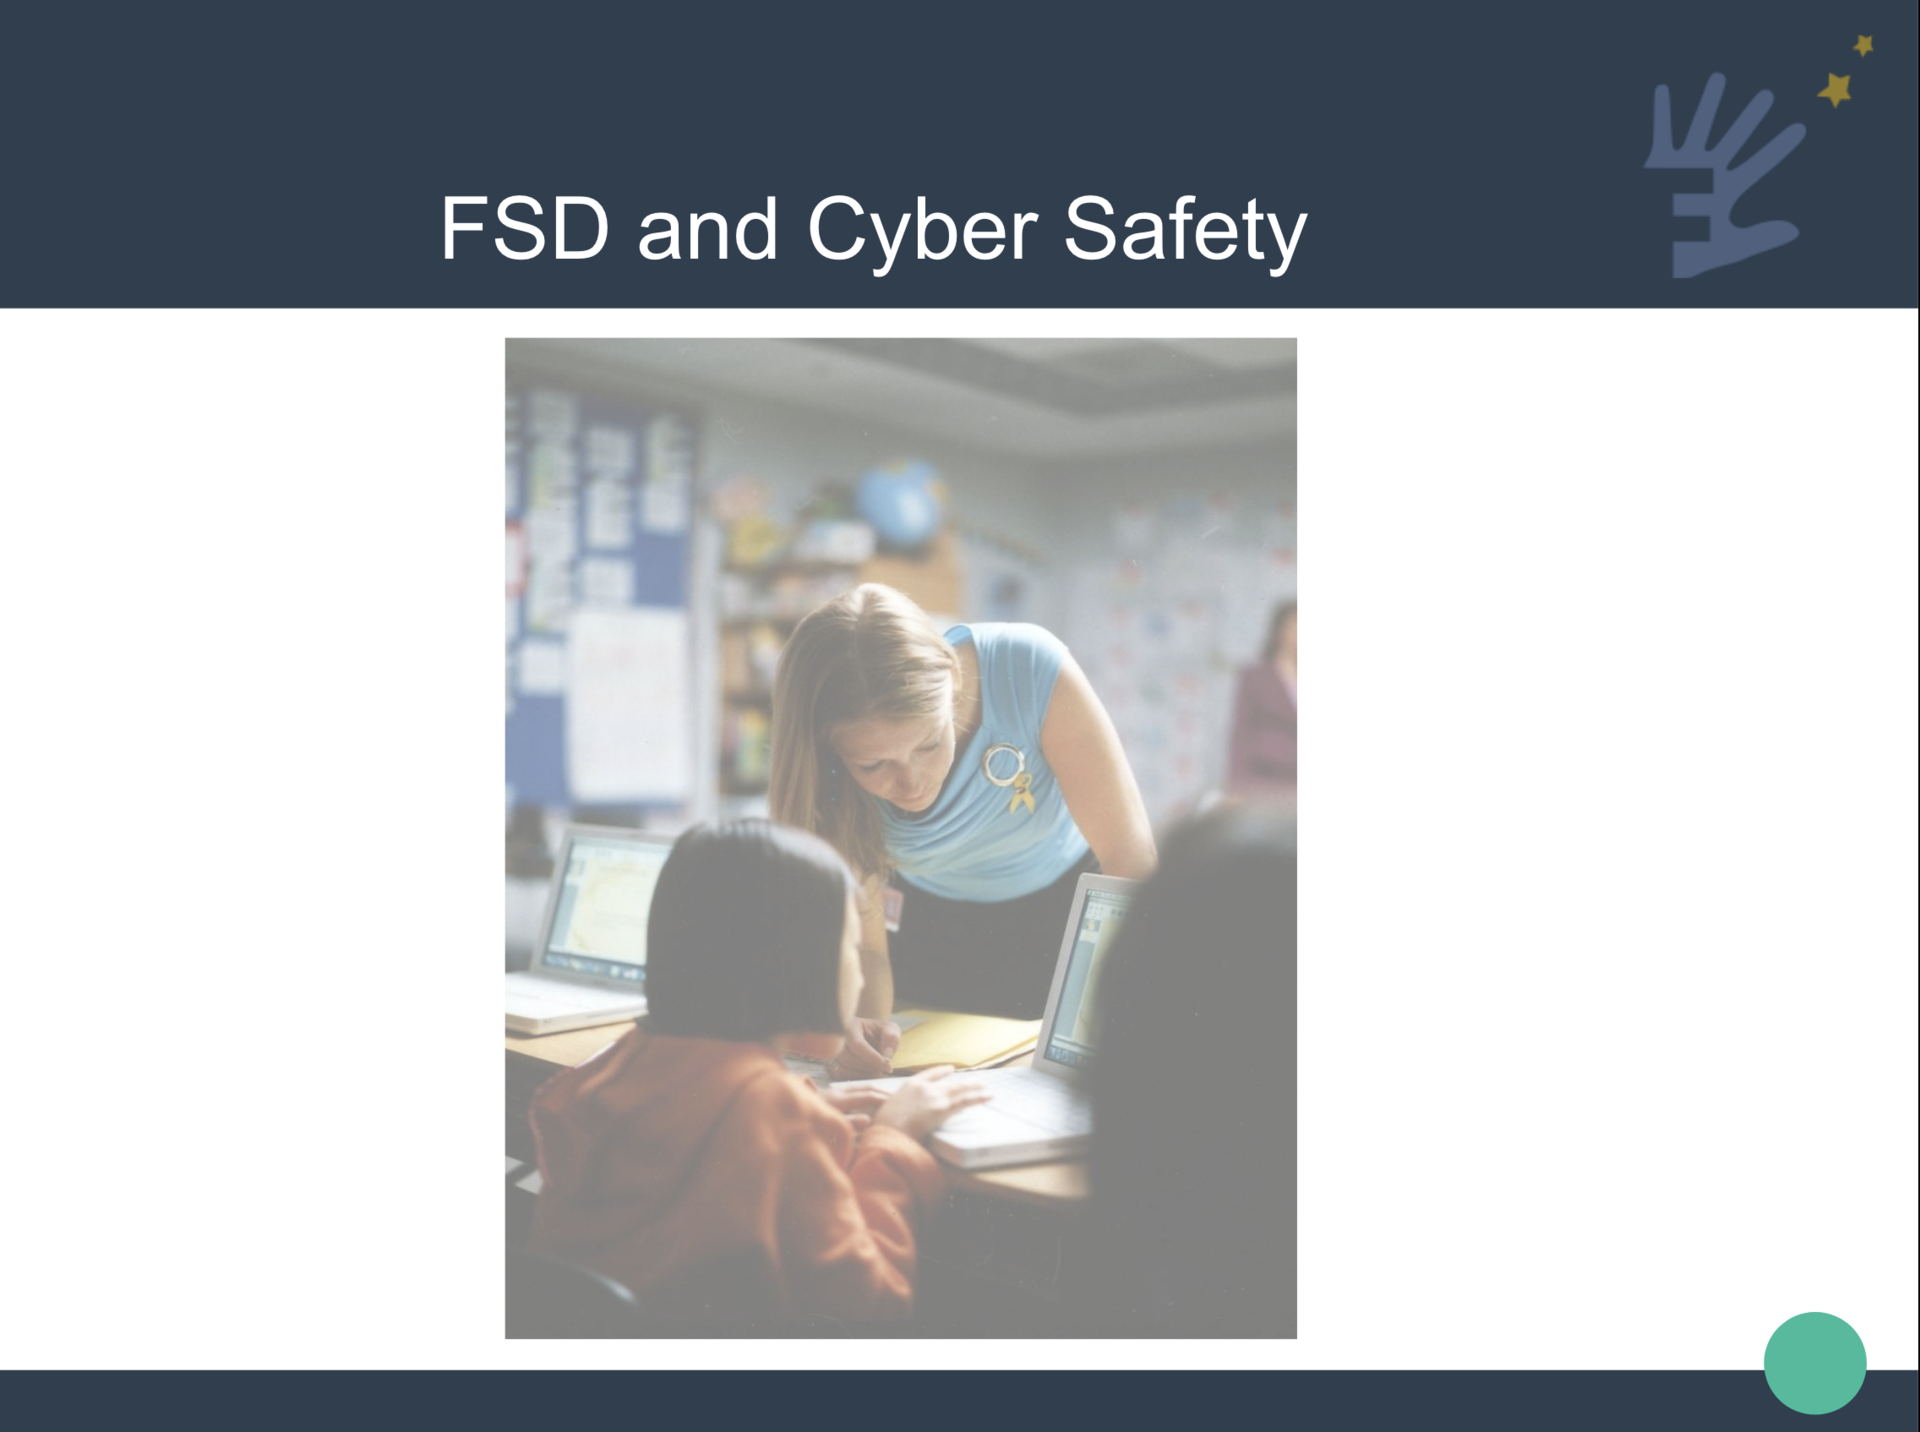 Cyber Safety slide deck